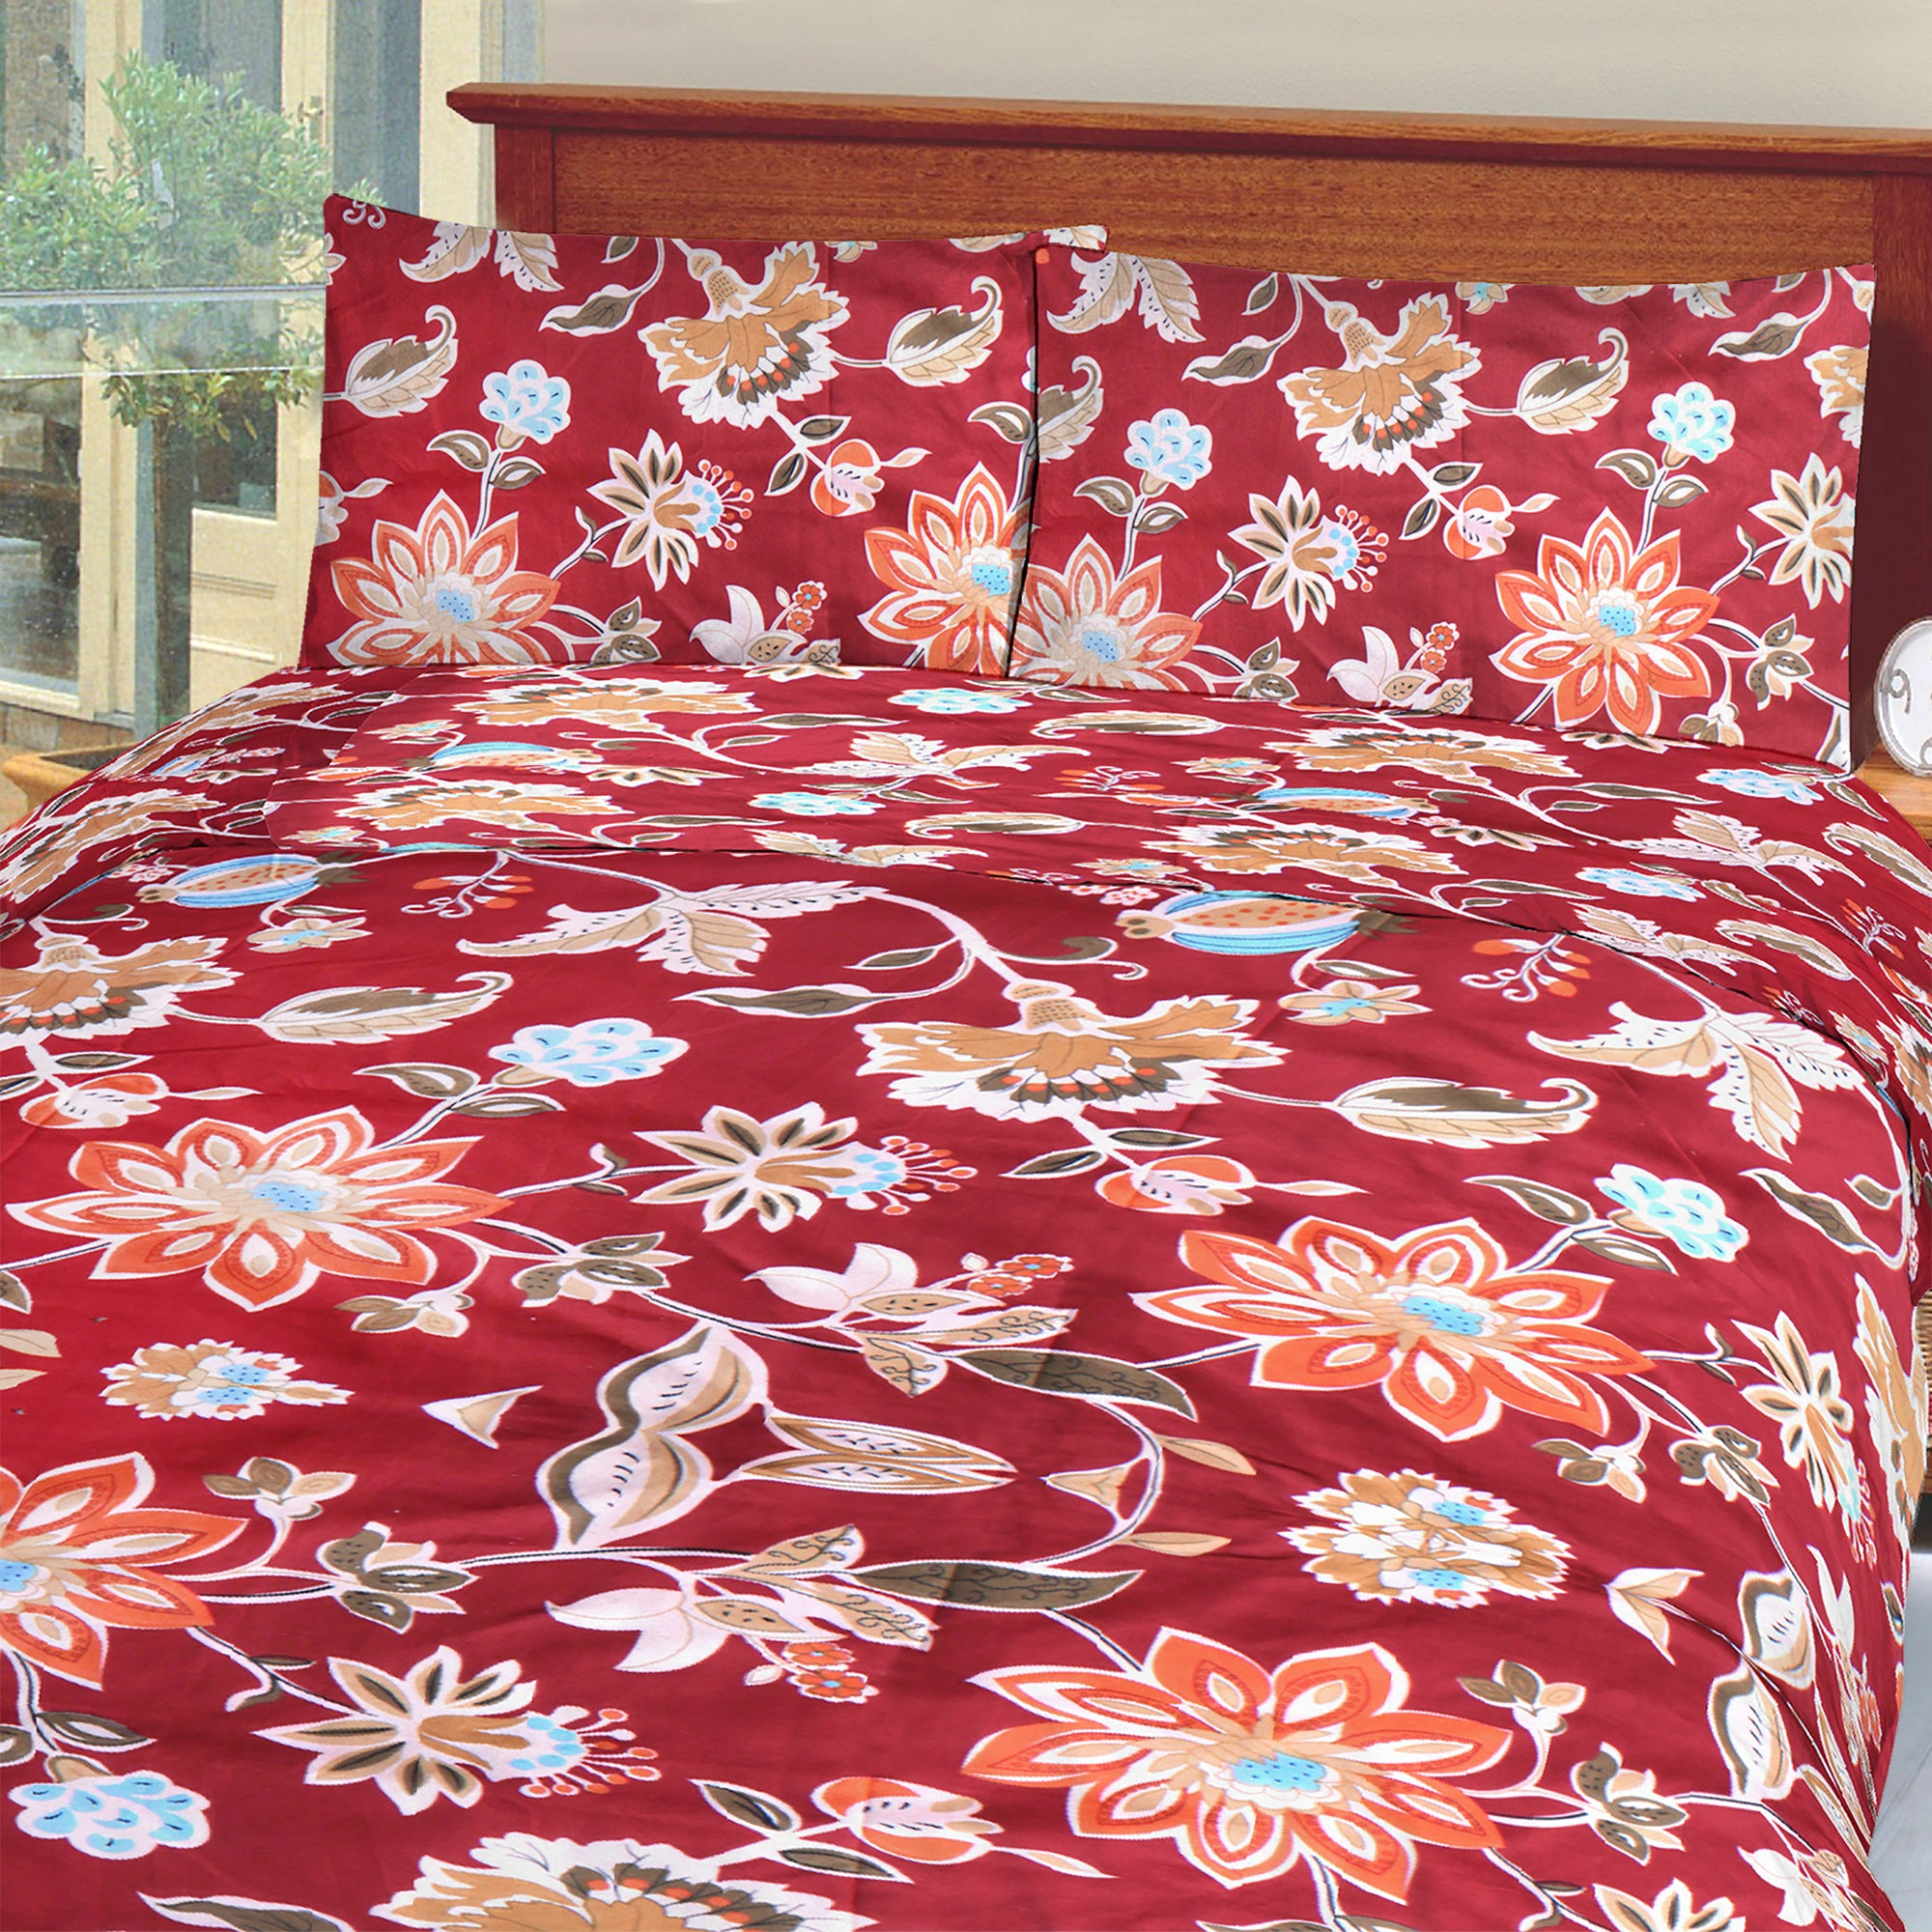 5D Okeru0027s Island 100% Cotton Sutton Printed Double Bed Sheet U0026 Pillow  Set BE5831